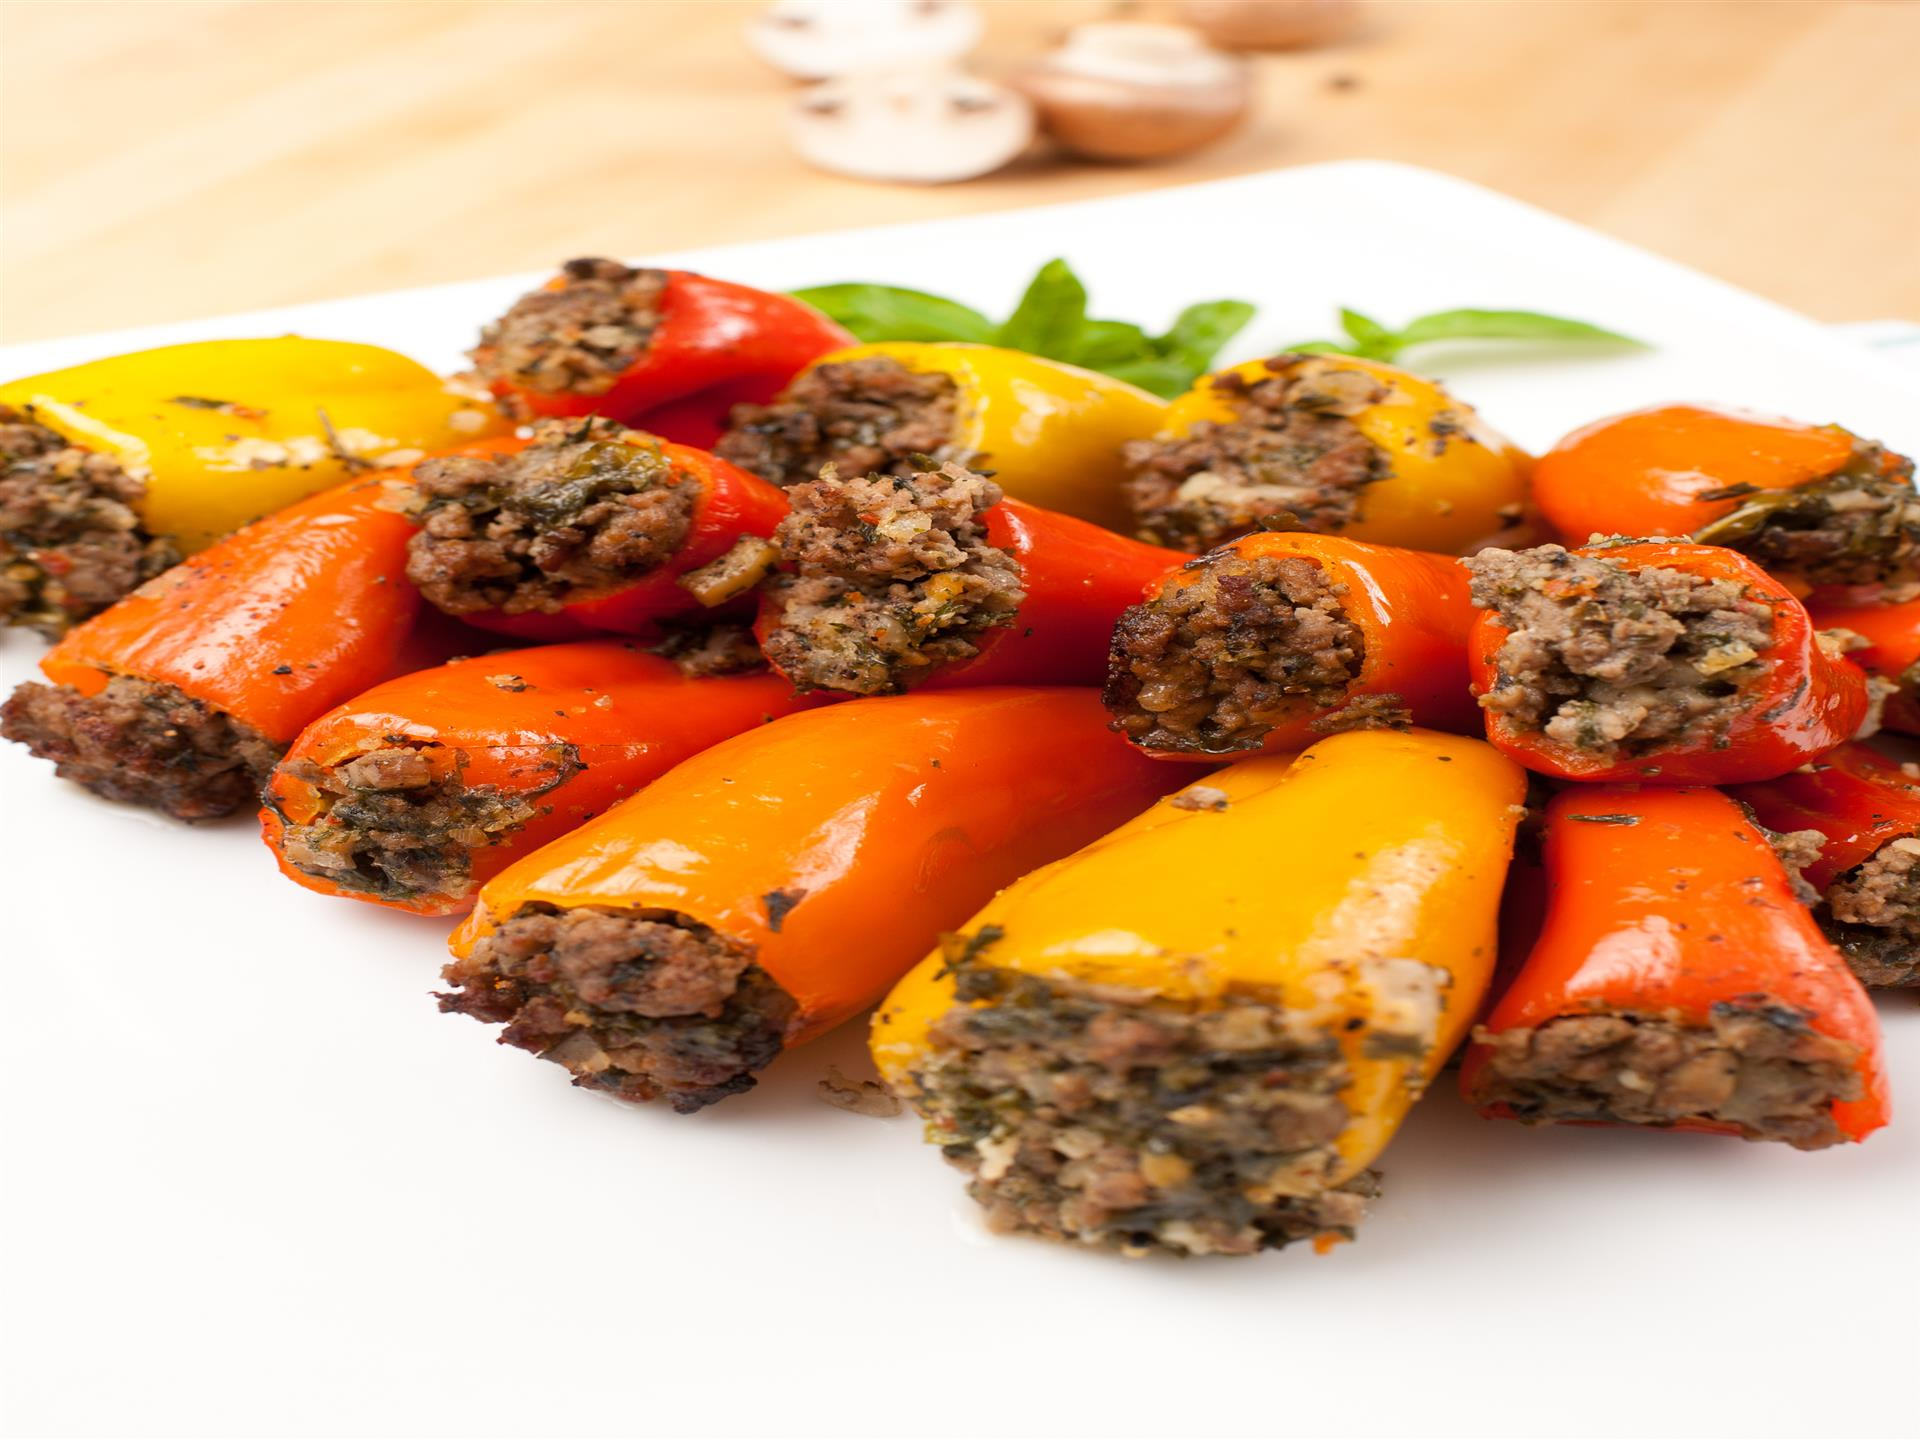 Red, yellow, and orange peppers stuffed with beef